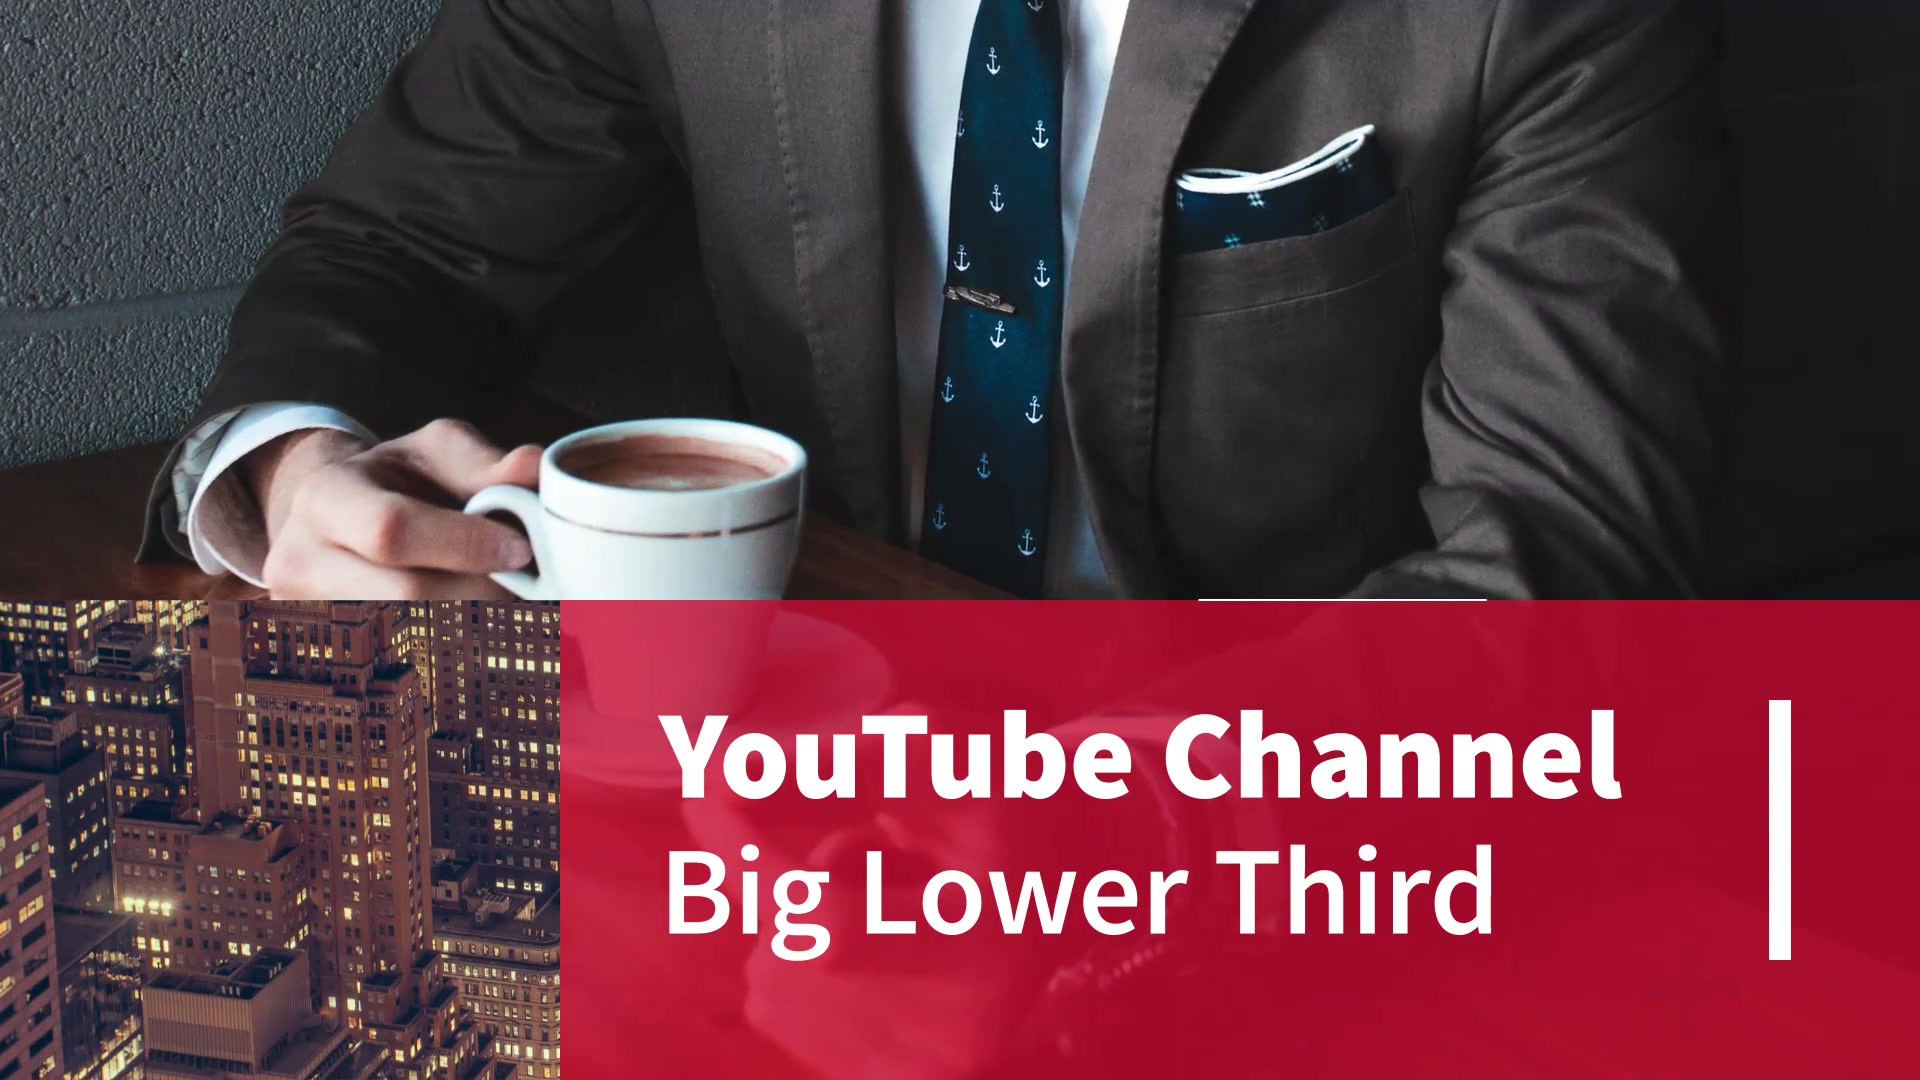 YouTube Broadcast - Download Videohive 19126147